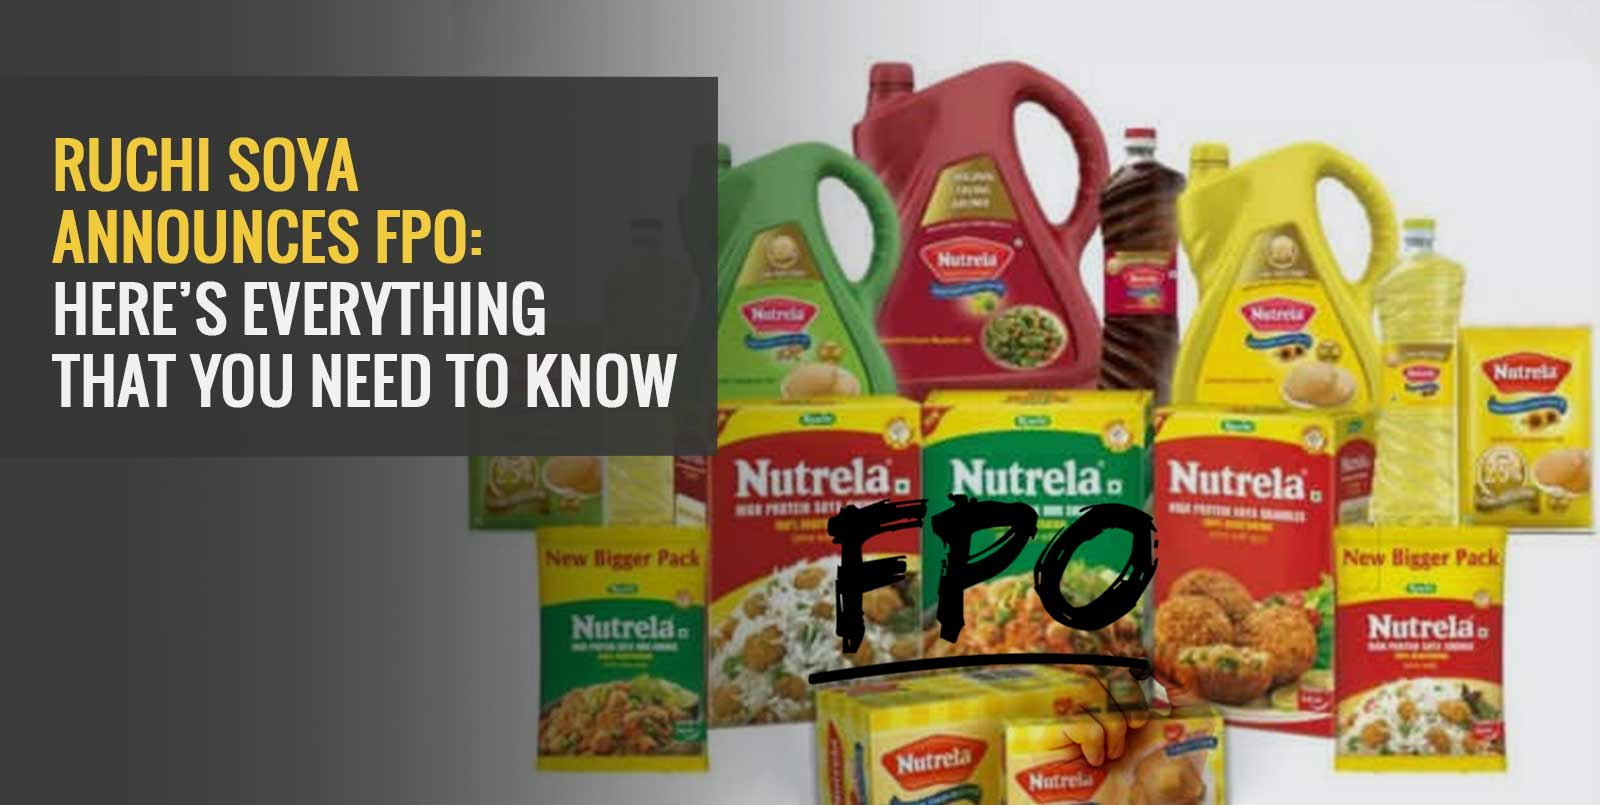 Ruchi Soya Announces FPO: Here's Everything That You Need to Know